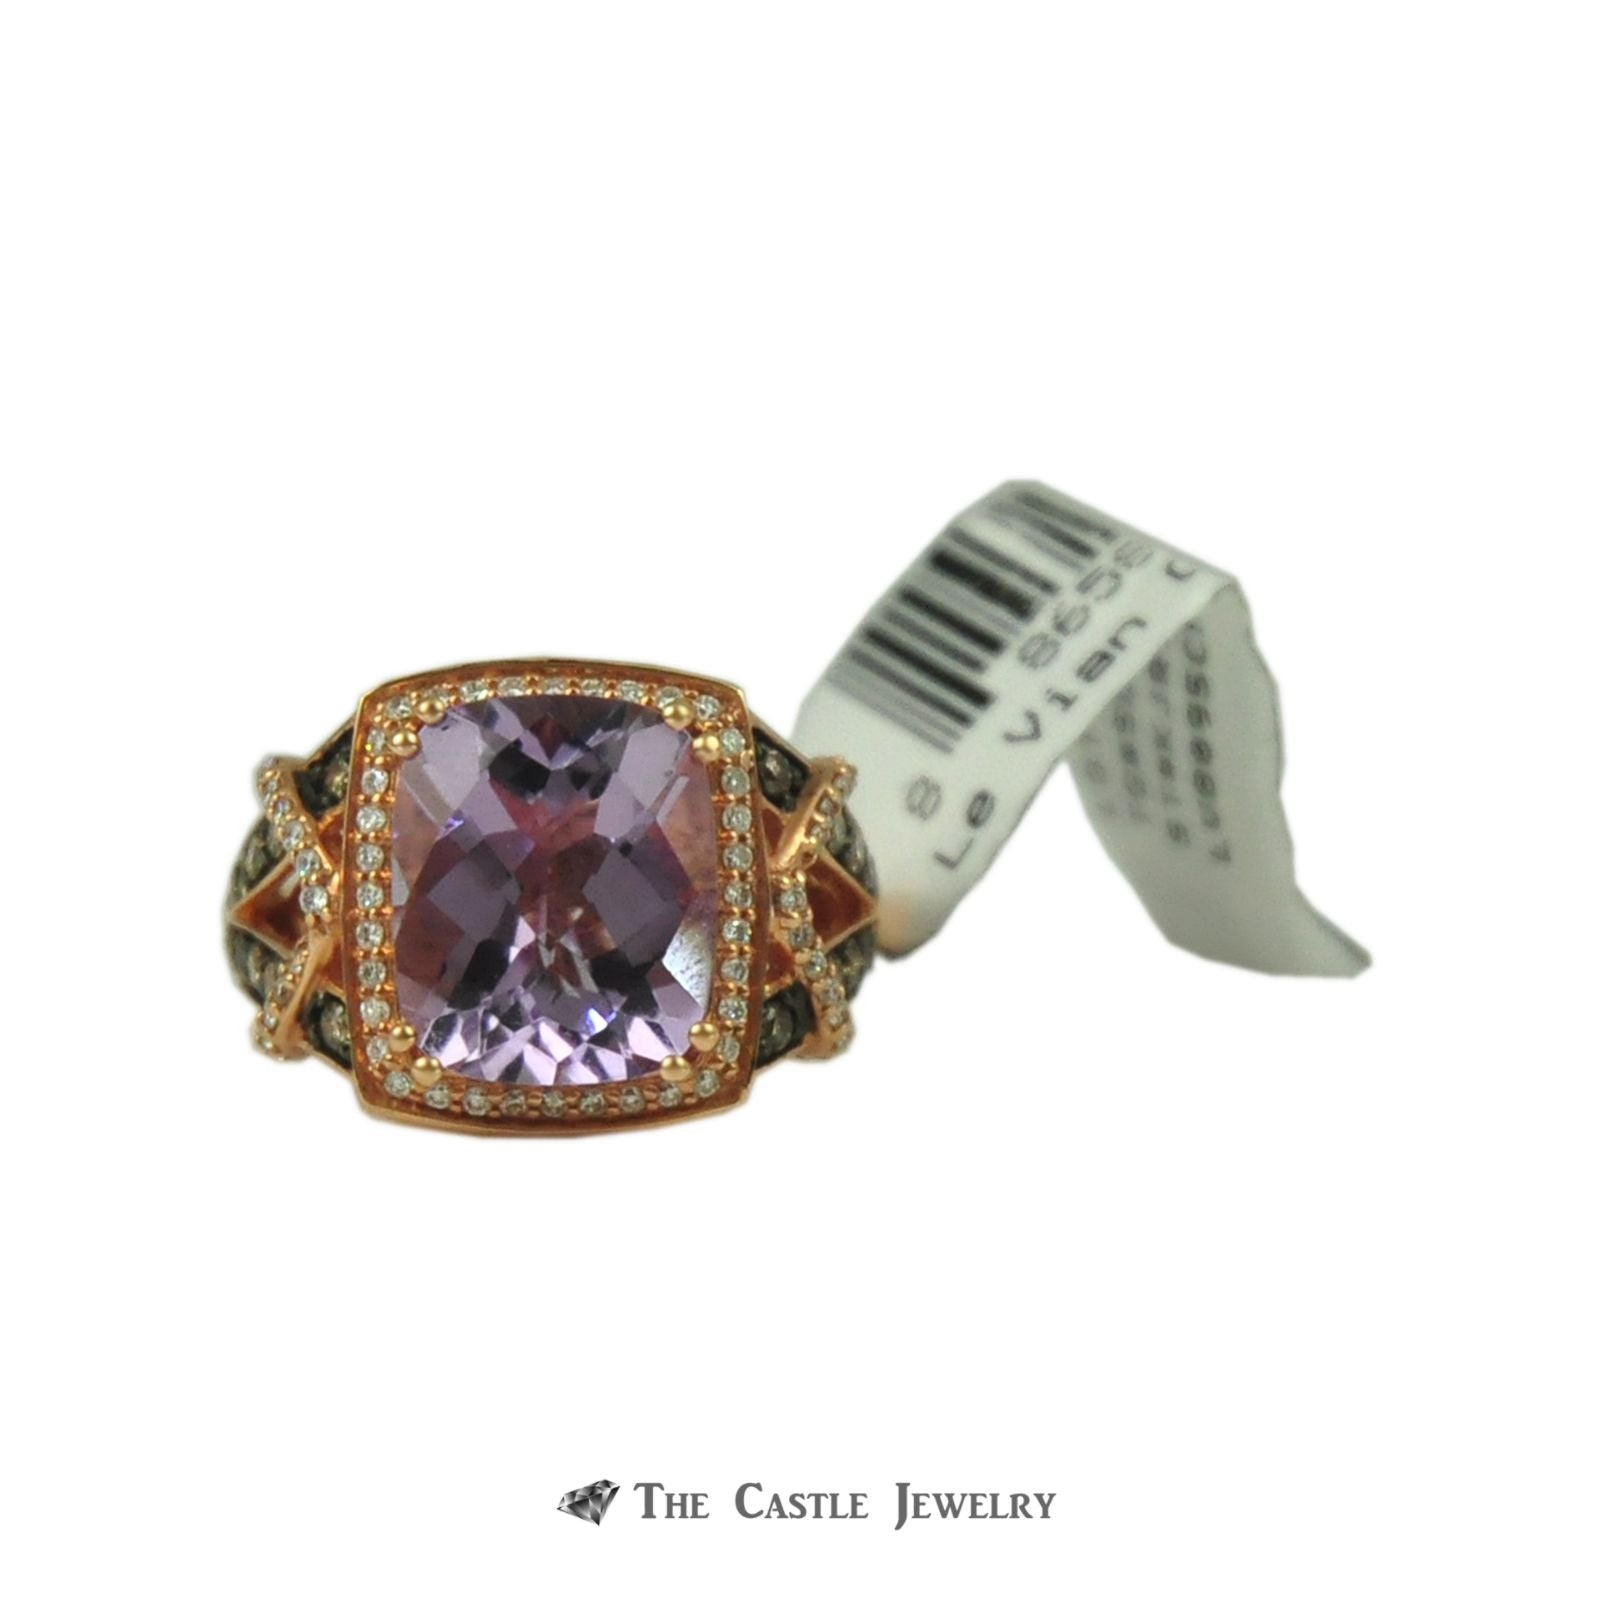 Designer Le Vian 4.40ct Cushion Cut Amethyst with White & Chocolate Diamond Accents